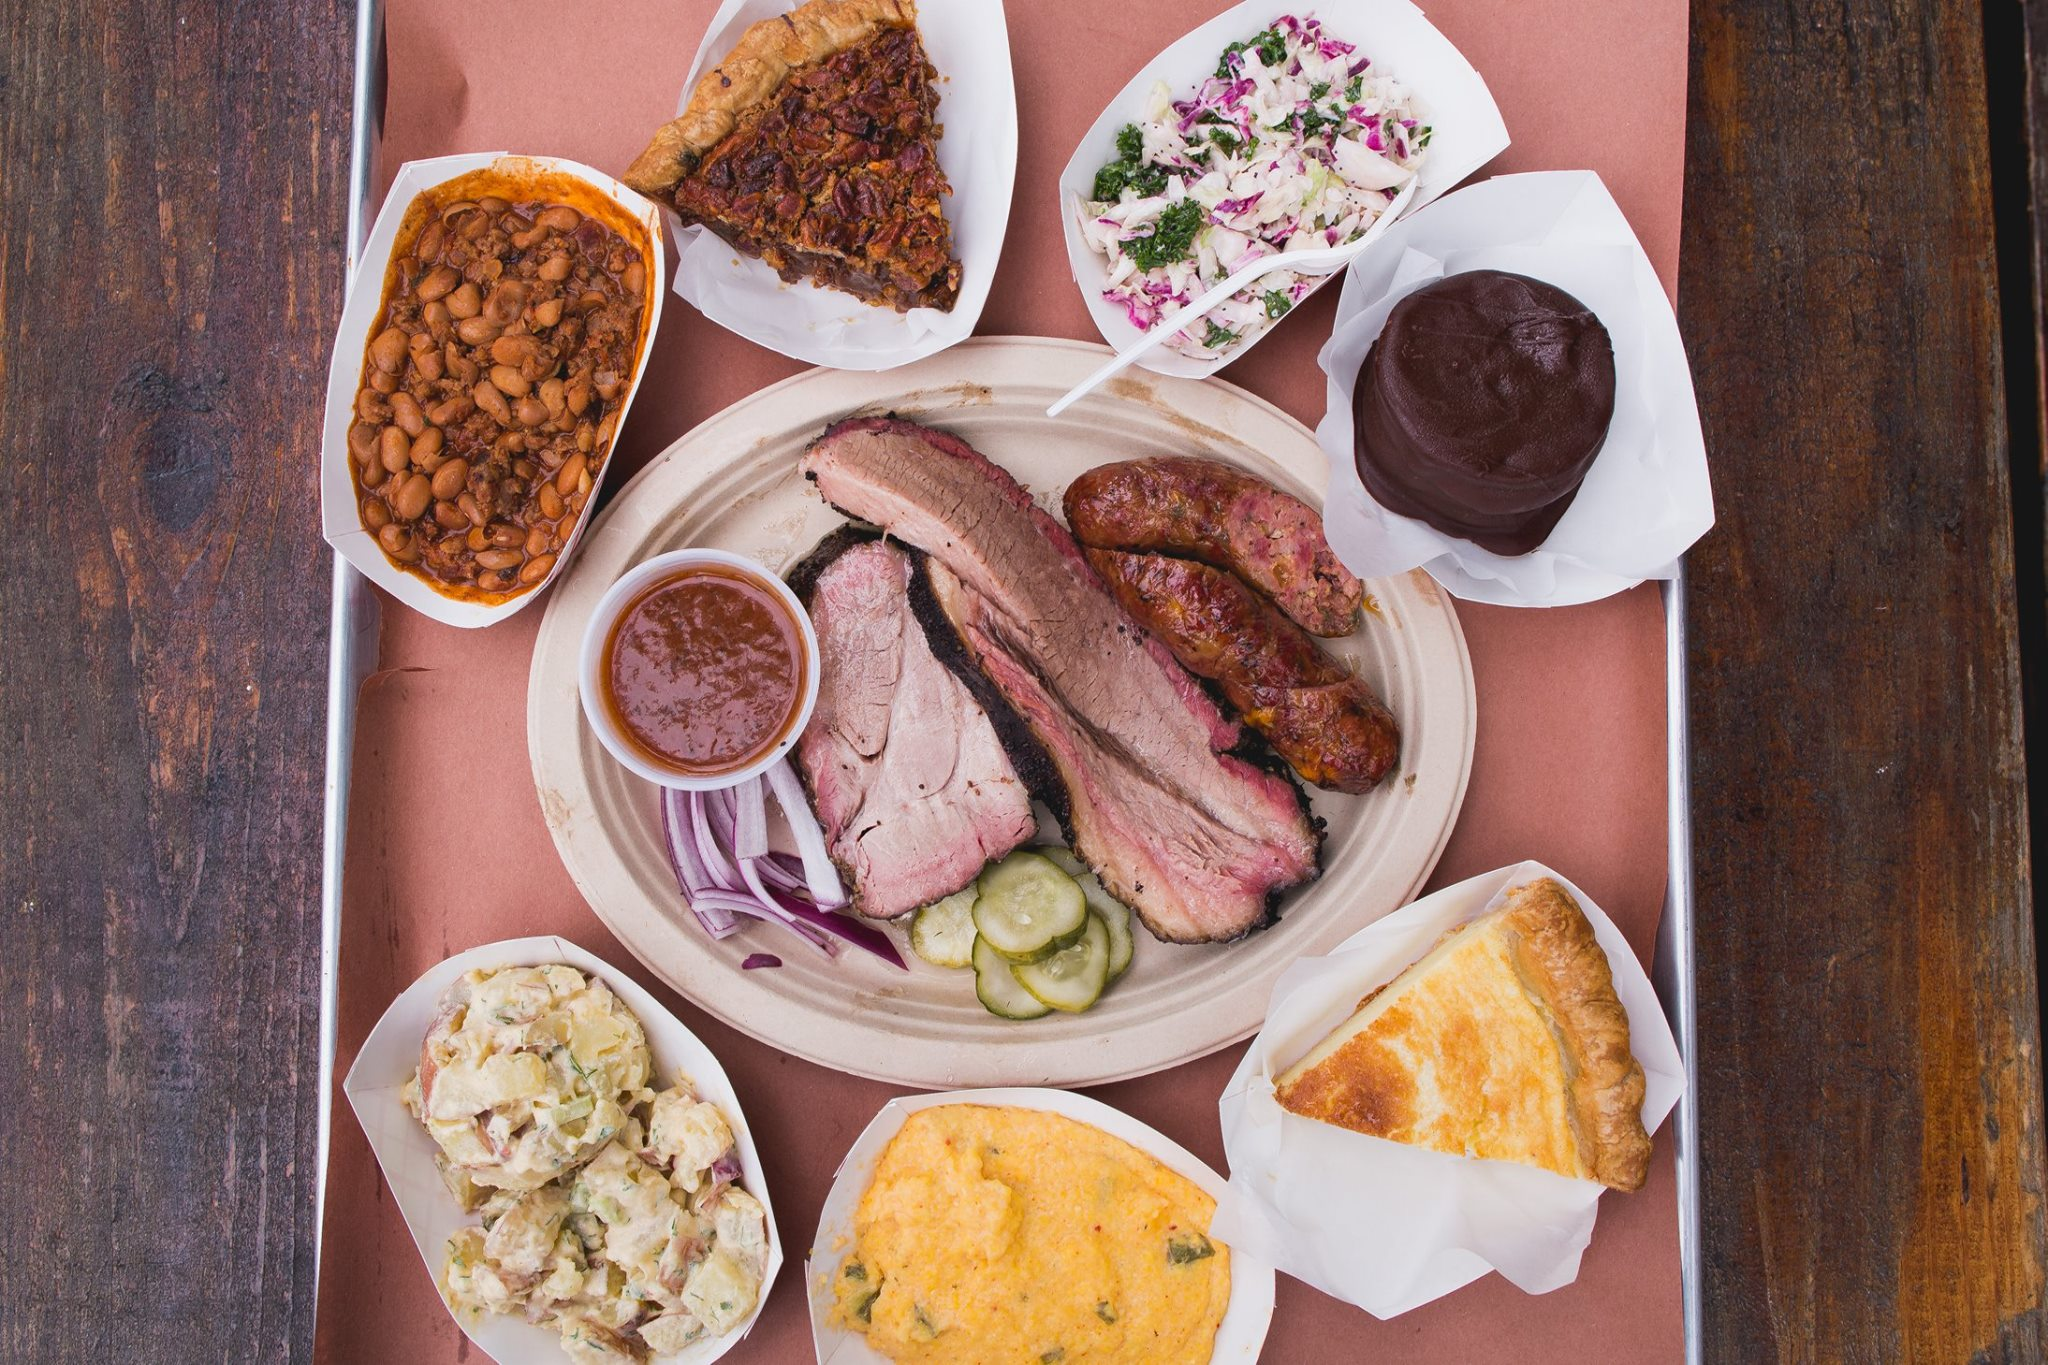 Barbecue, sides, and desserts from Micklethwait Craft Meats